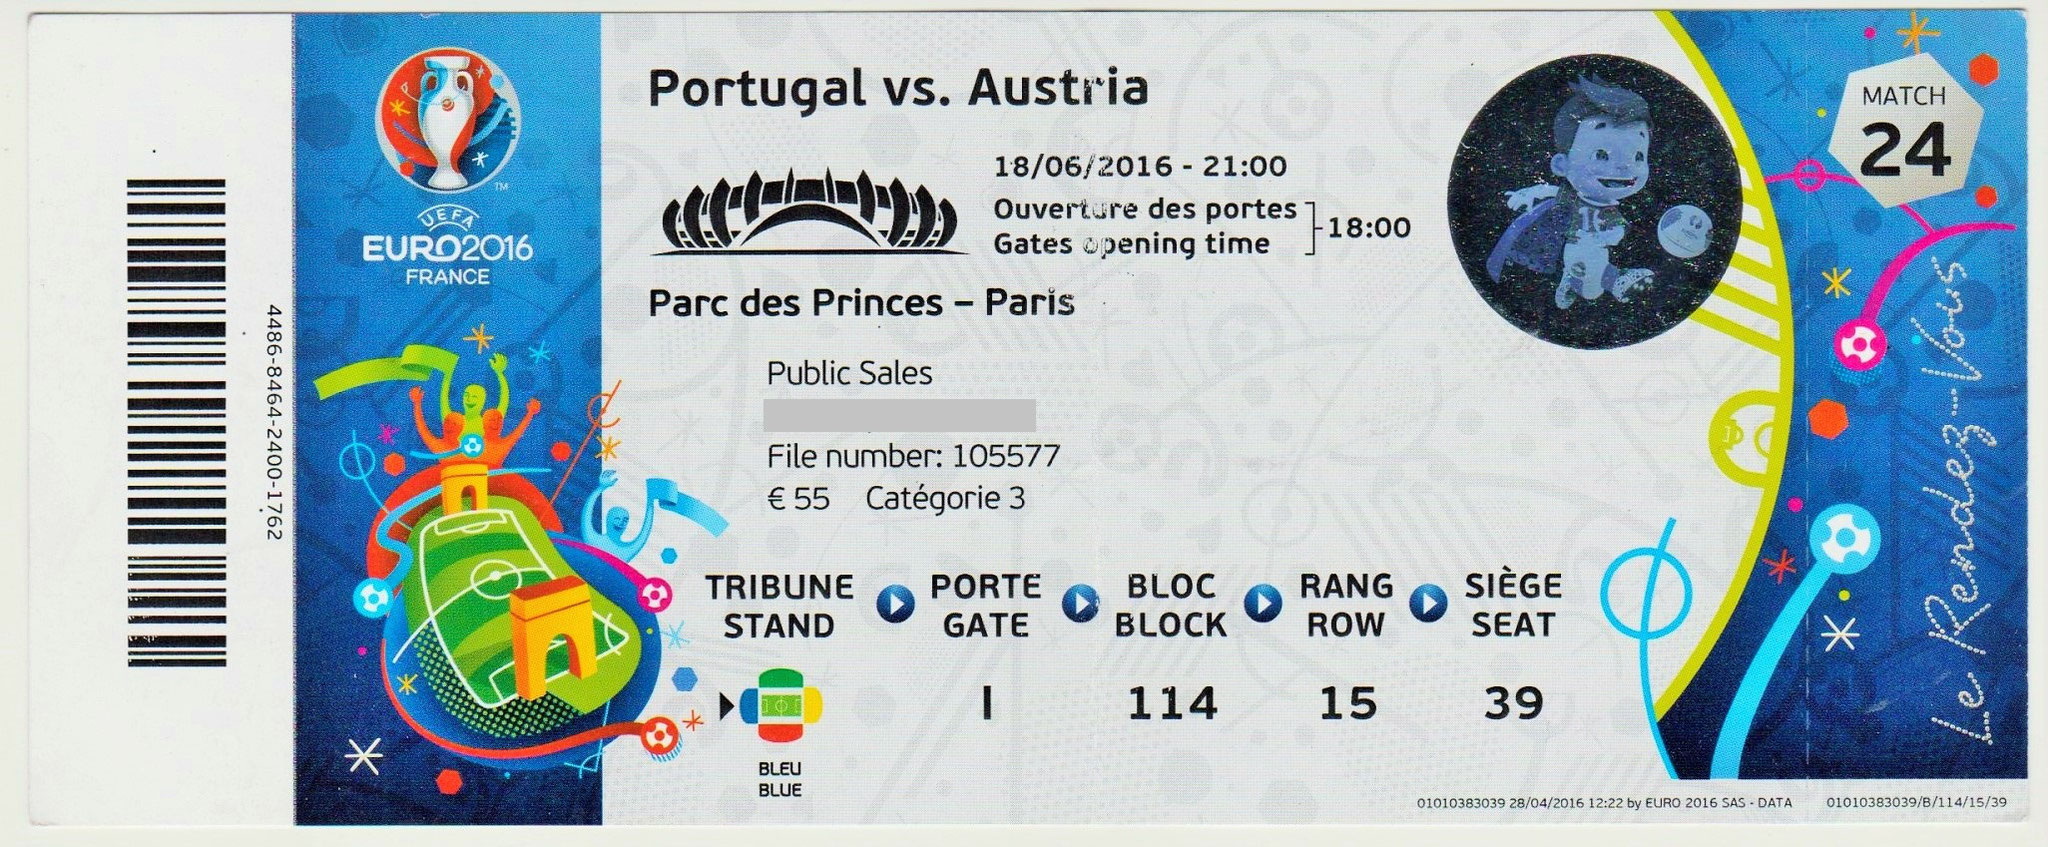 18/06/2016 Paris : Portugal  0 - 0  Autriche